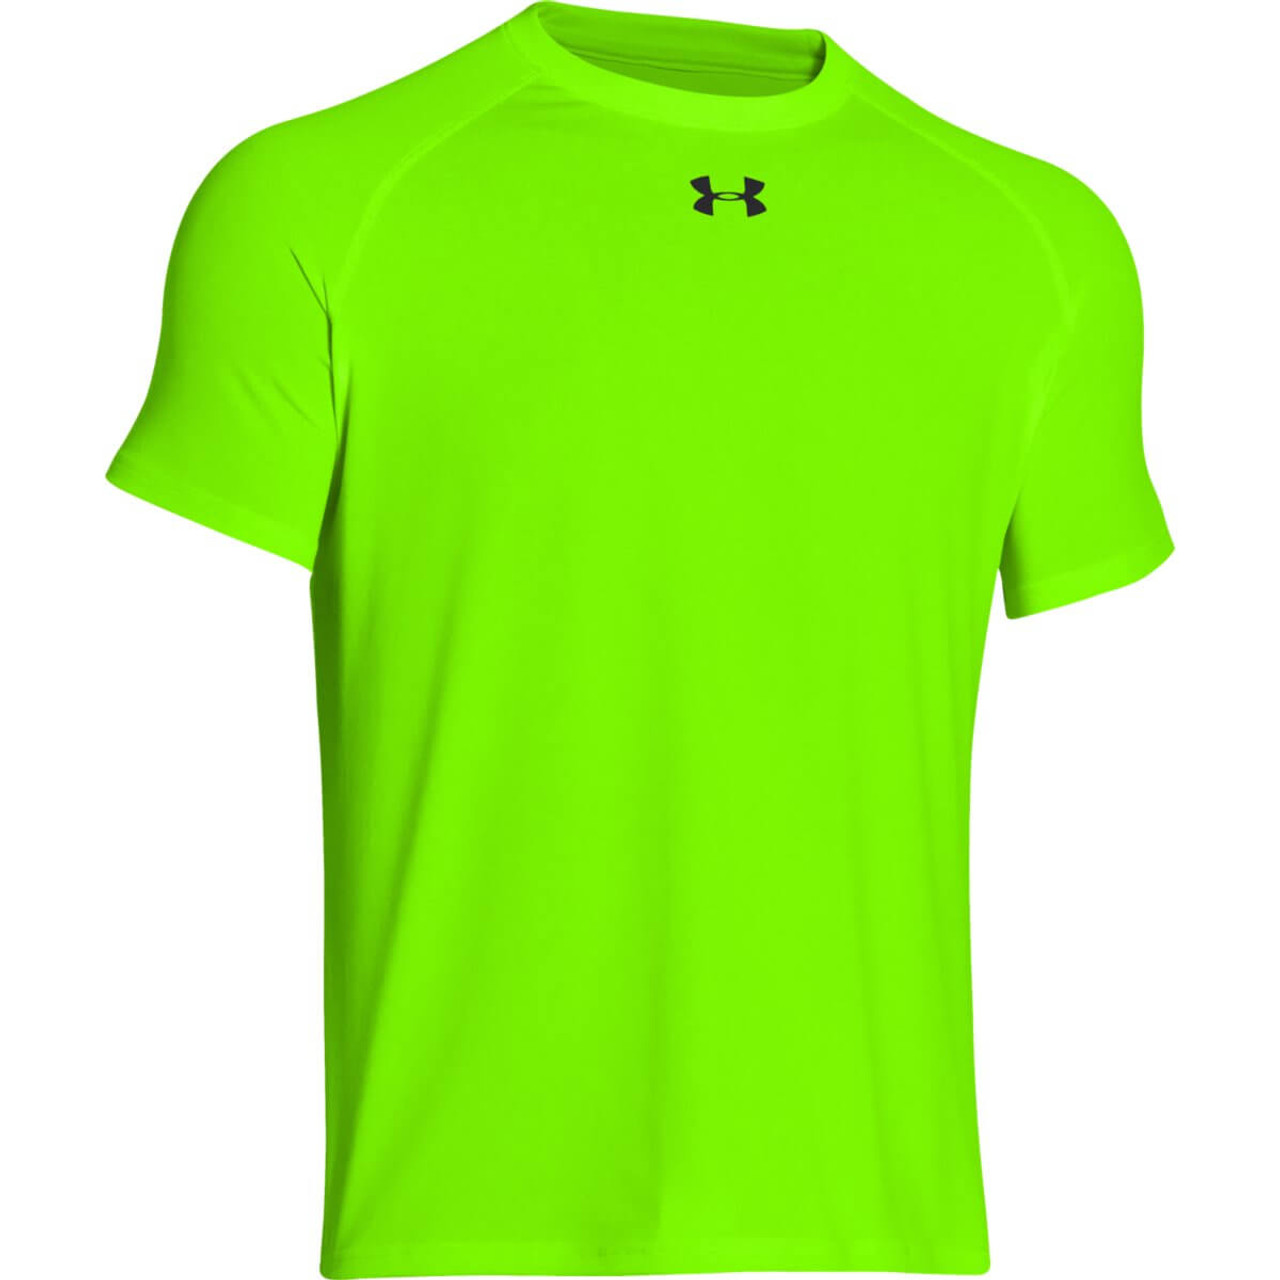 Shop educational-gave.ml for Nike golf equipment for men, women and children. Stay comfortable and perform your best with a huge selection of premium Nike golf apparel, shoes, and accessories.